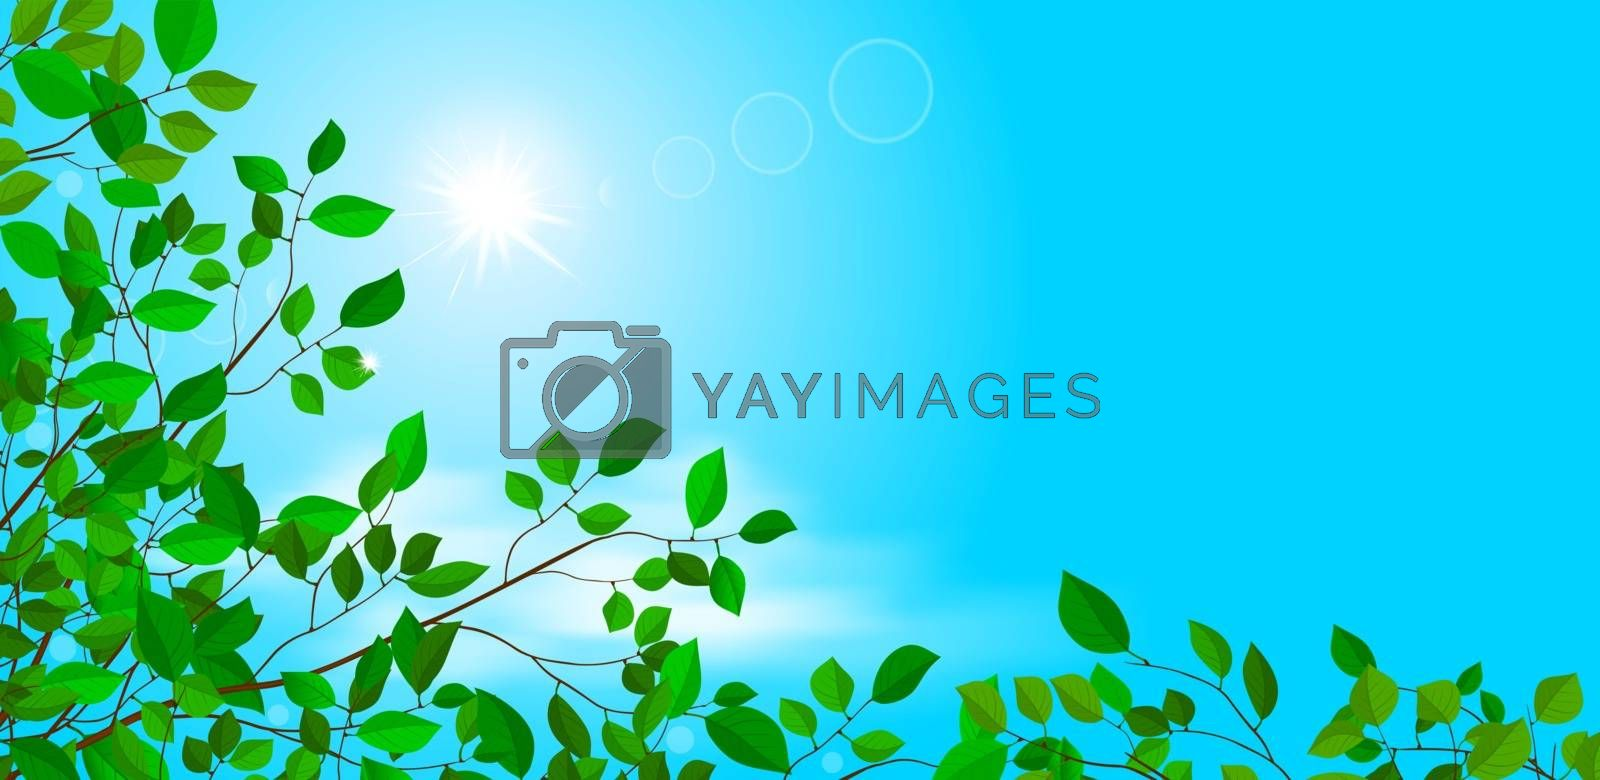 Branches of a tree with leaves. The sun in the blue sky. Cloud. Summer background.